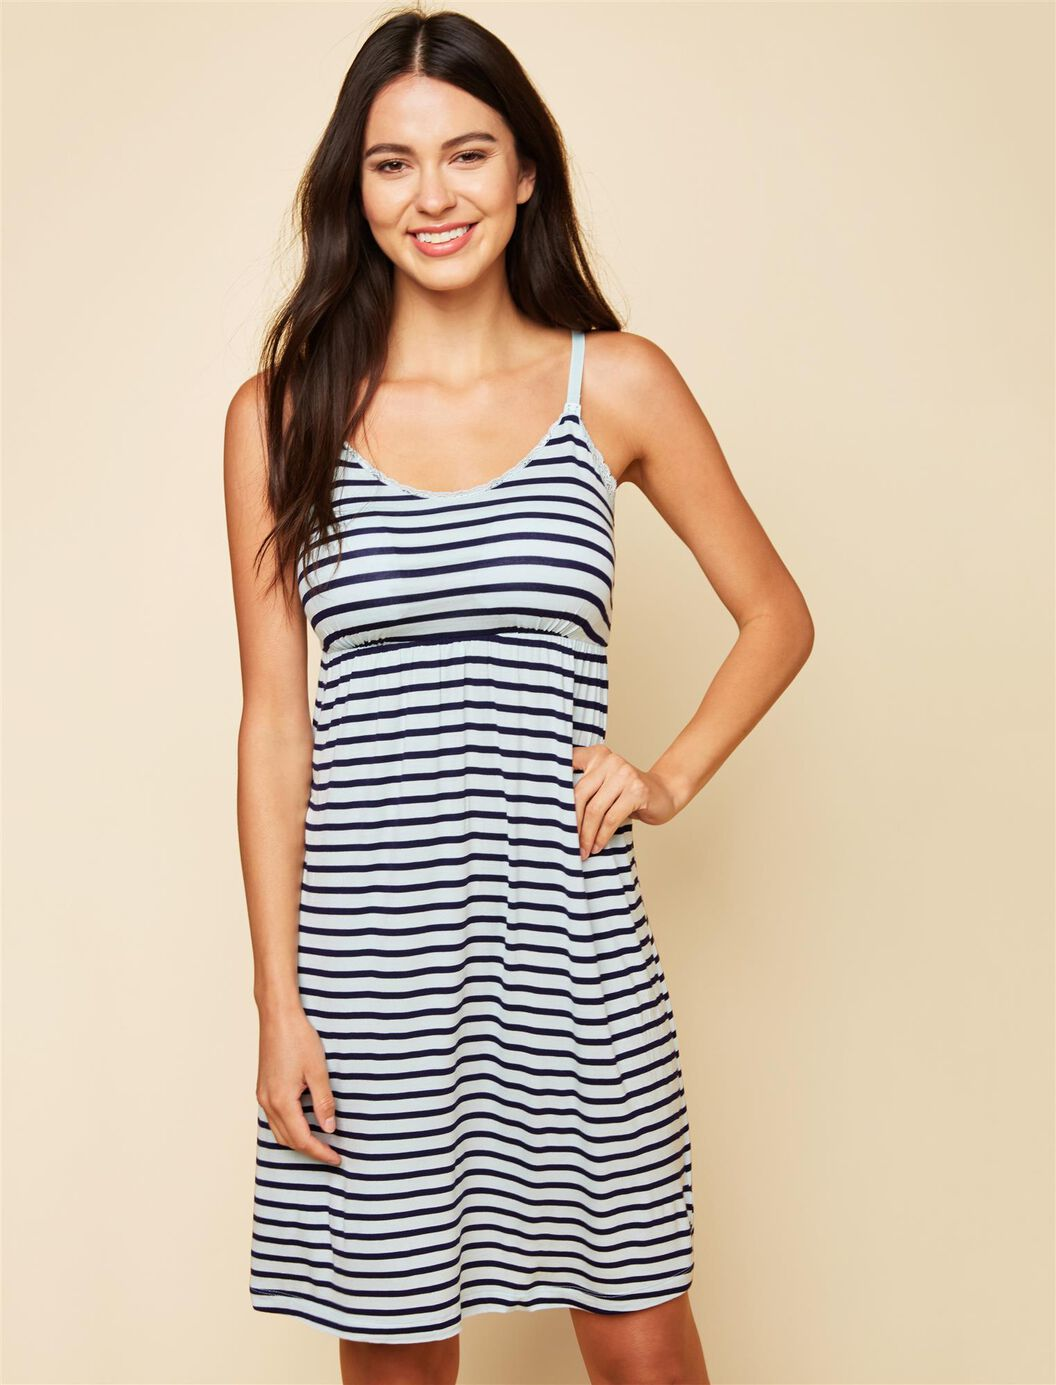 Bump in the Night Nursing Nightgown- Aqua/Navy Stripe at Motherhood Maternity in Victor, NY | Tuggl